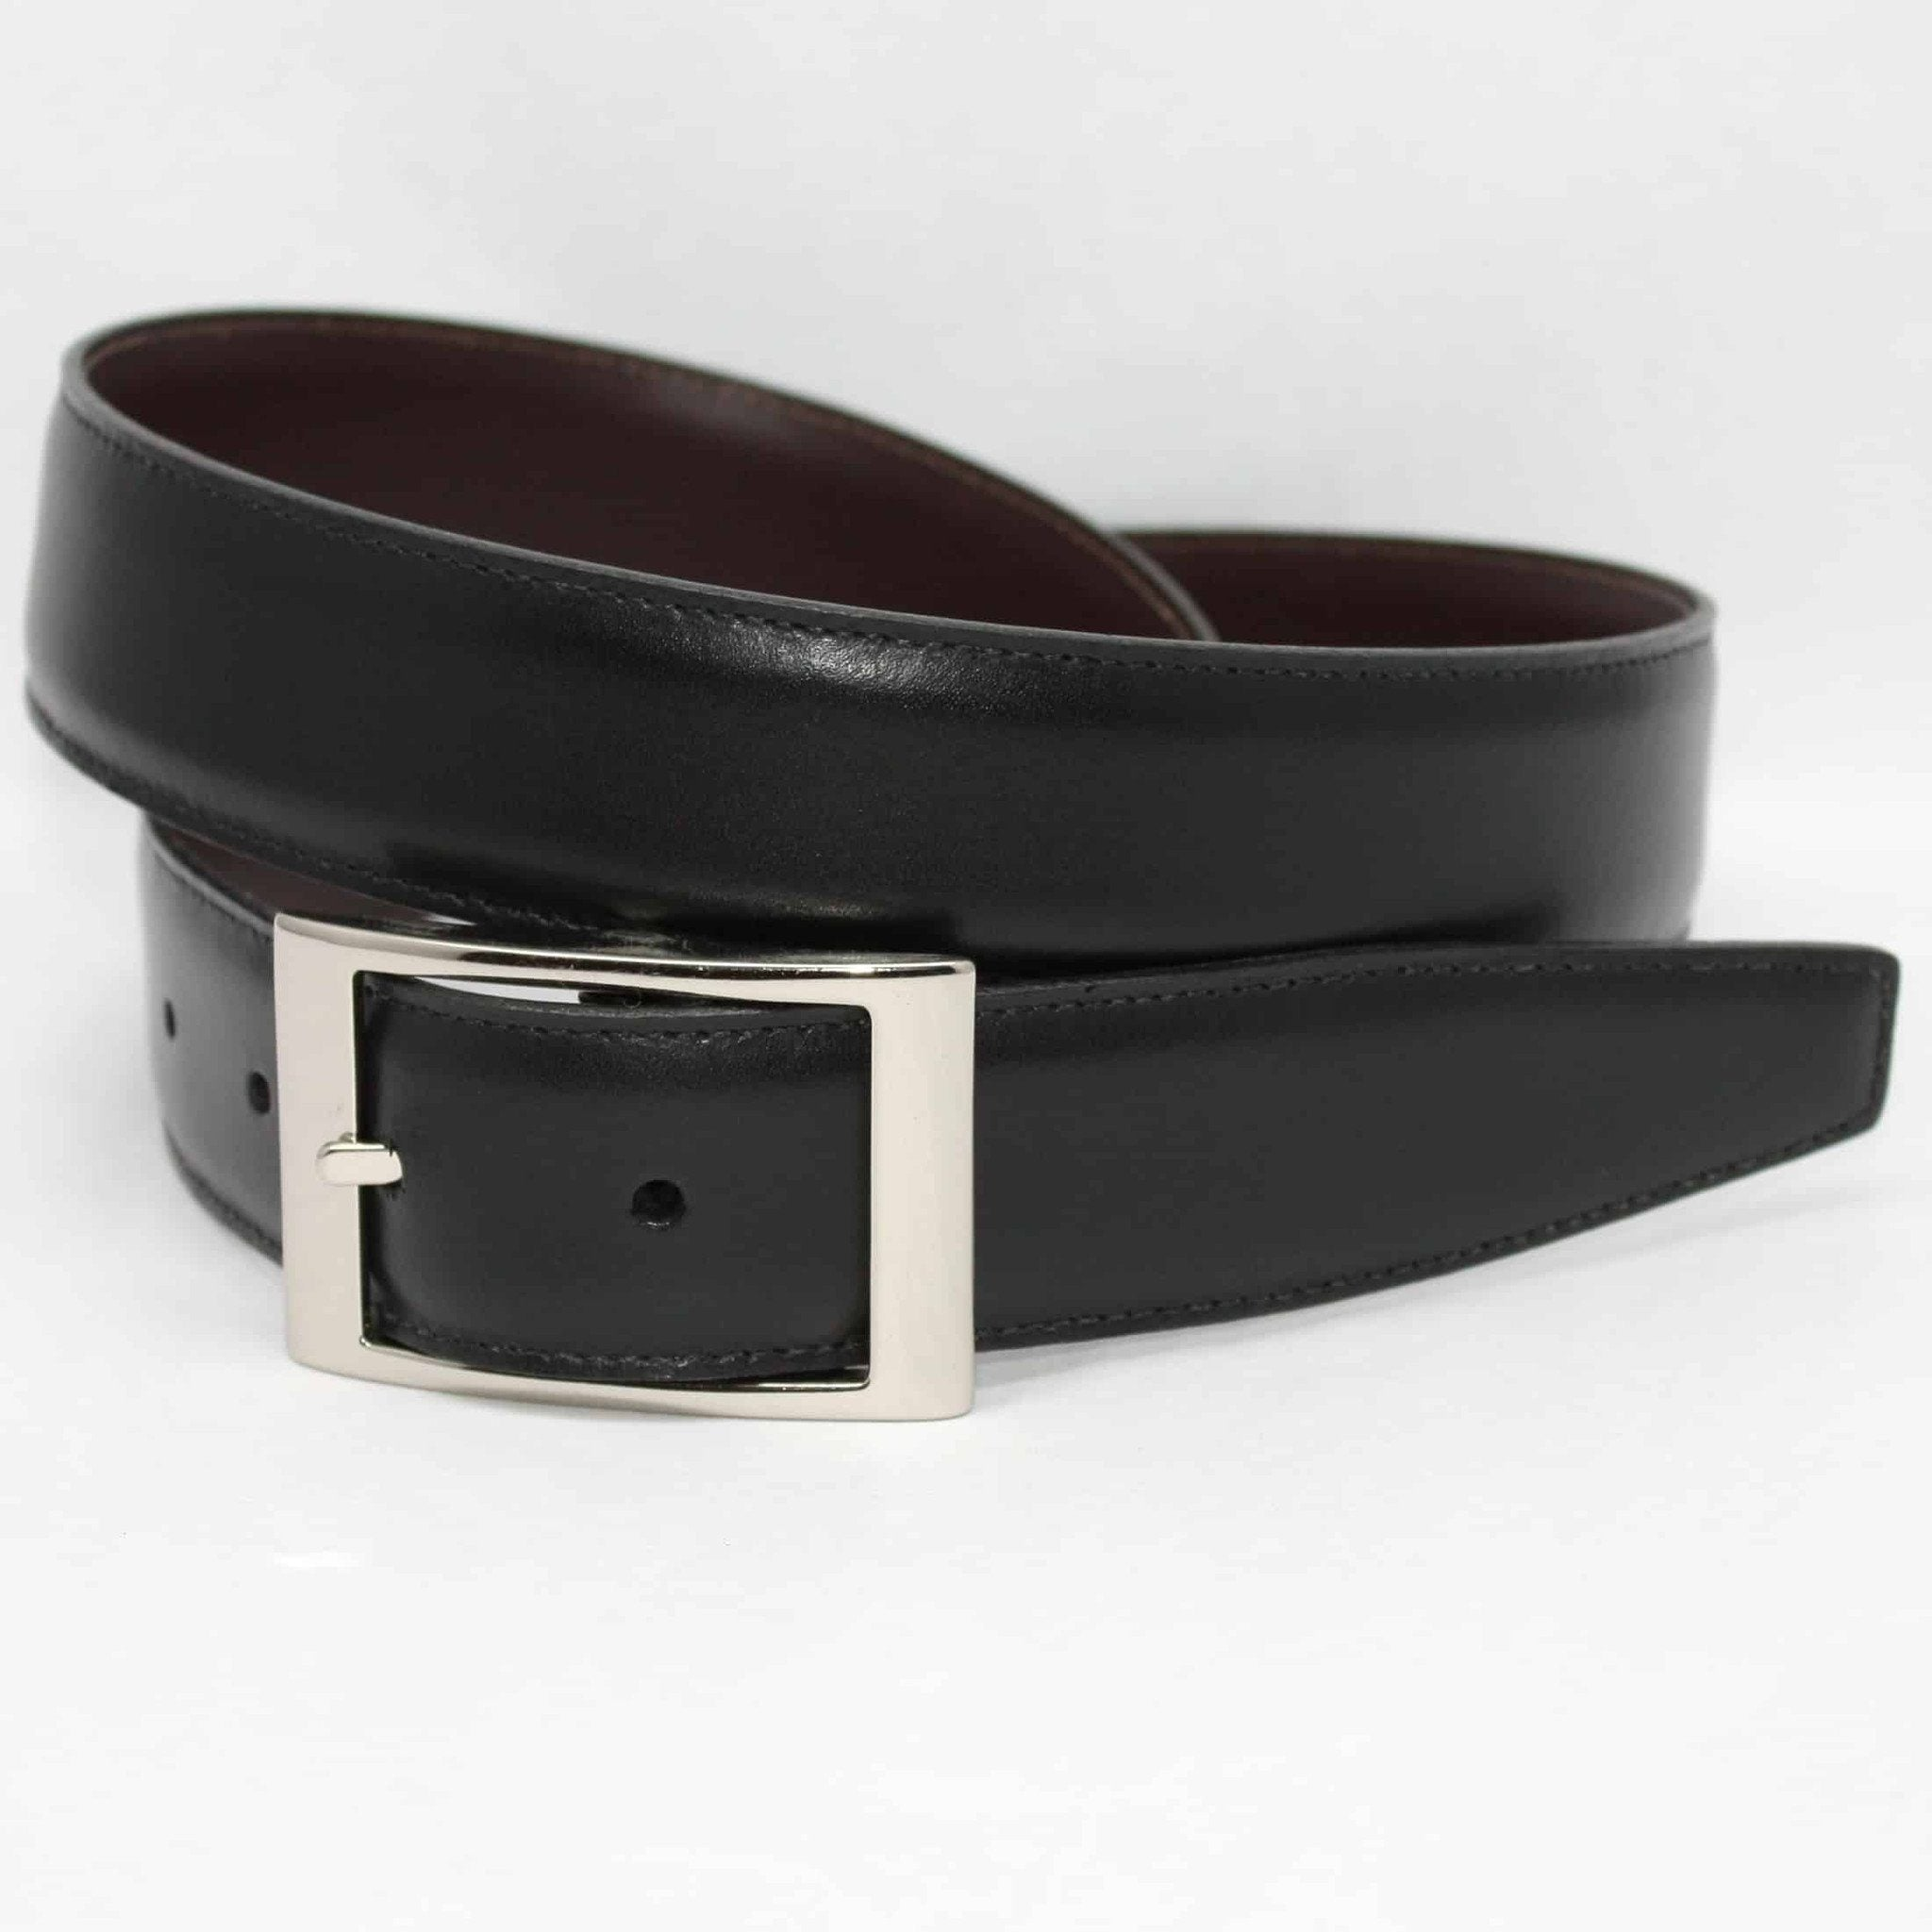 Italian Aniline Leather - Reversible Black to Brown,BELT,GentRow.com, | GentRow.com